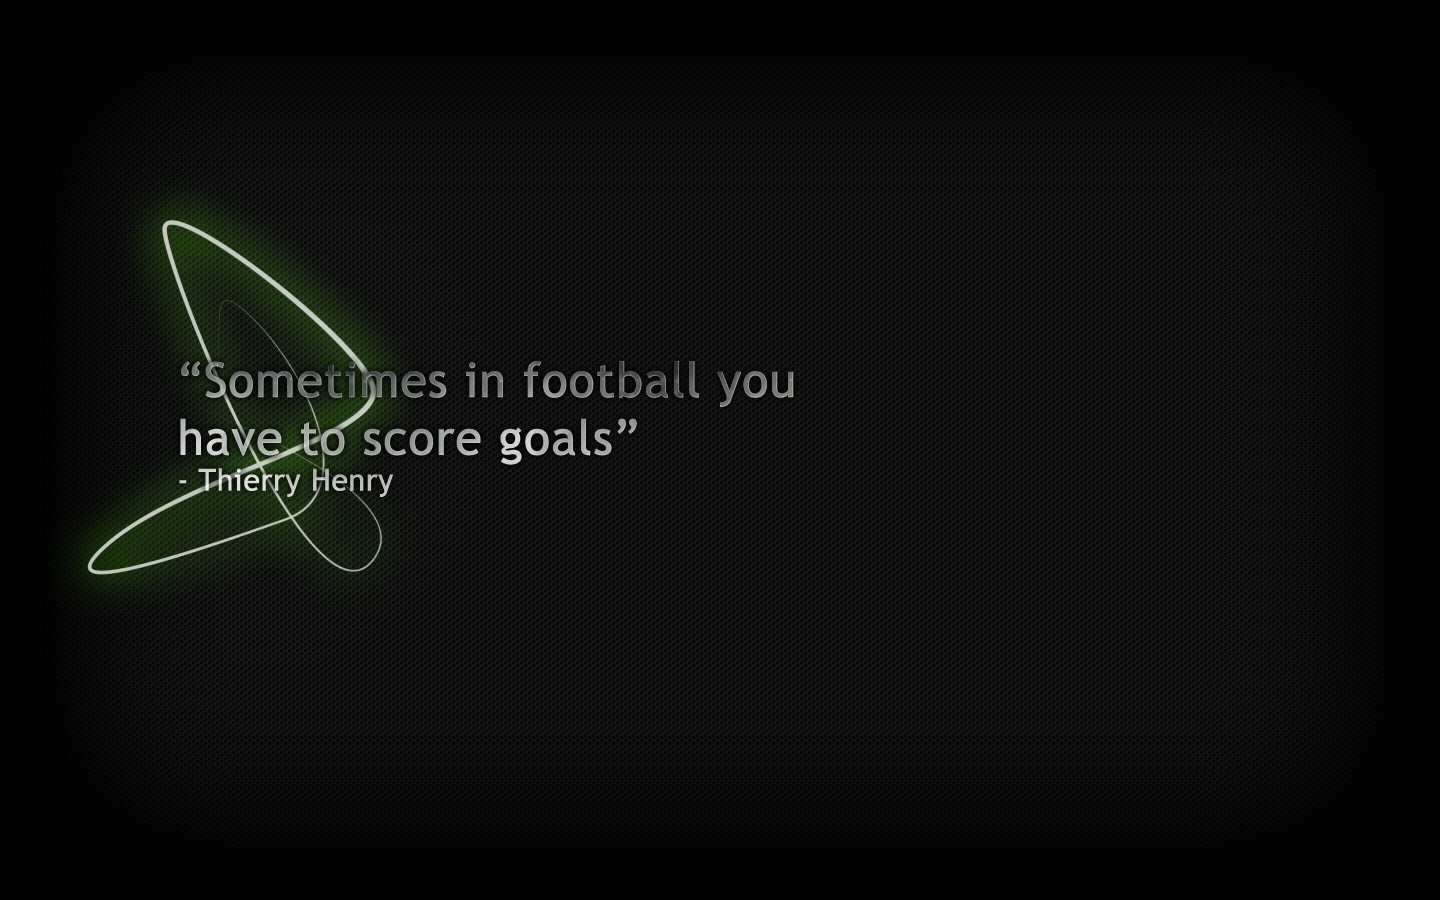 Thierry Henry's quote #3